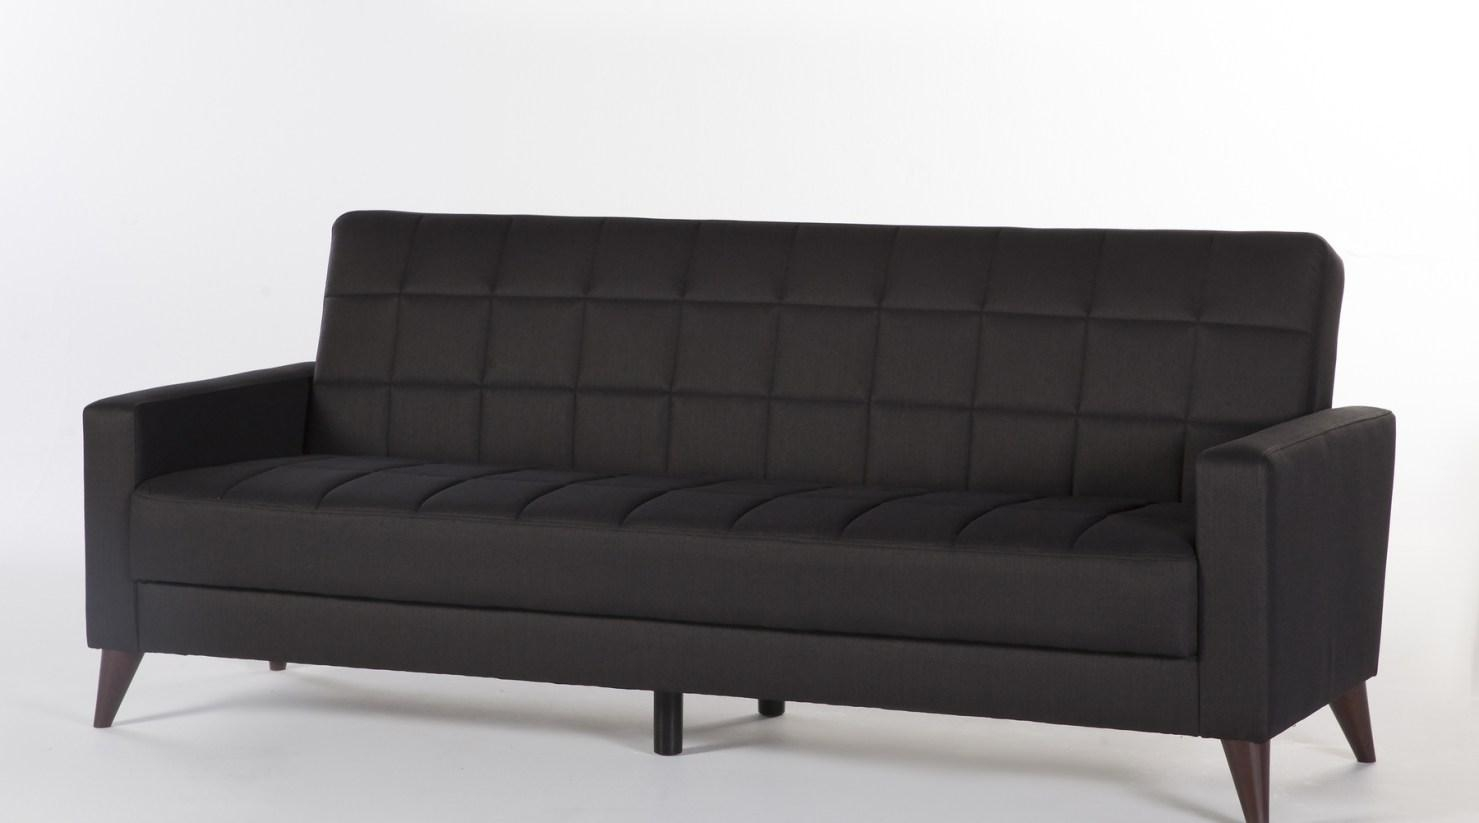 Sofa : 3 Seater Sofa Endearing Camden 3 Seater Sofa Very Within 3 Seater Sofas For Sale (Image 16 of 21)